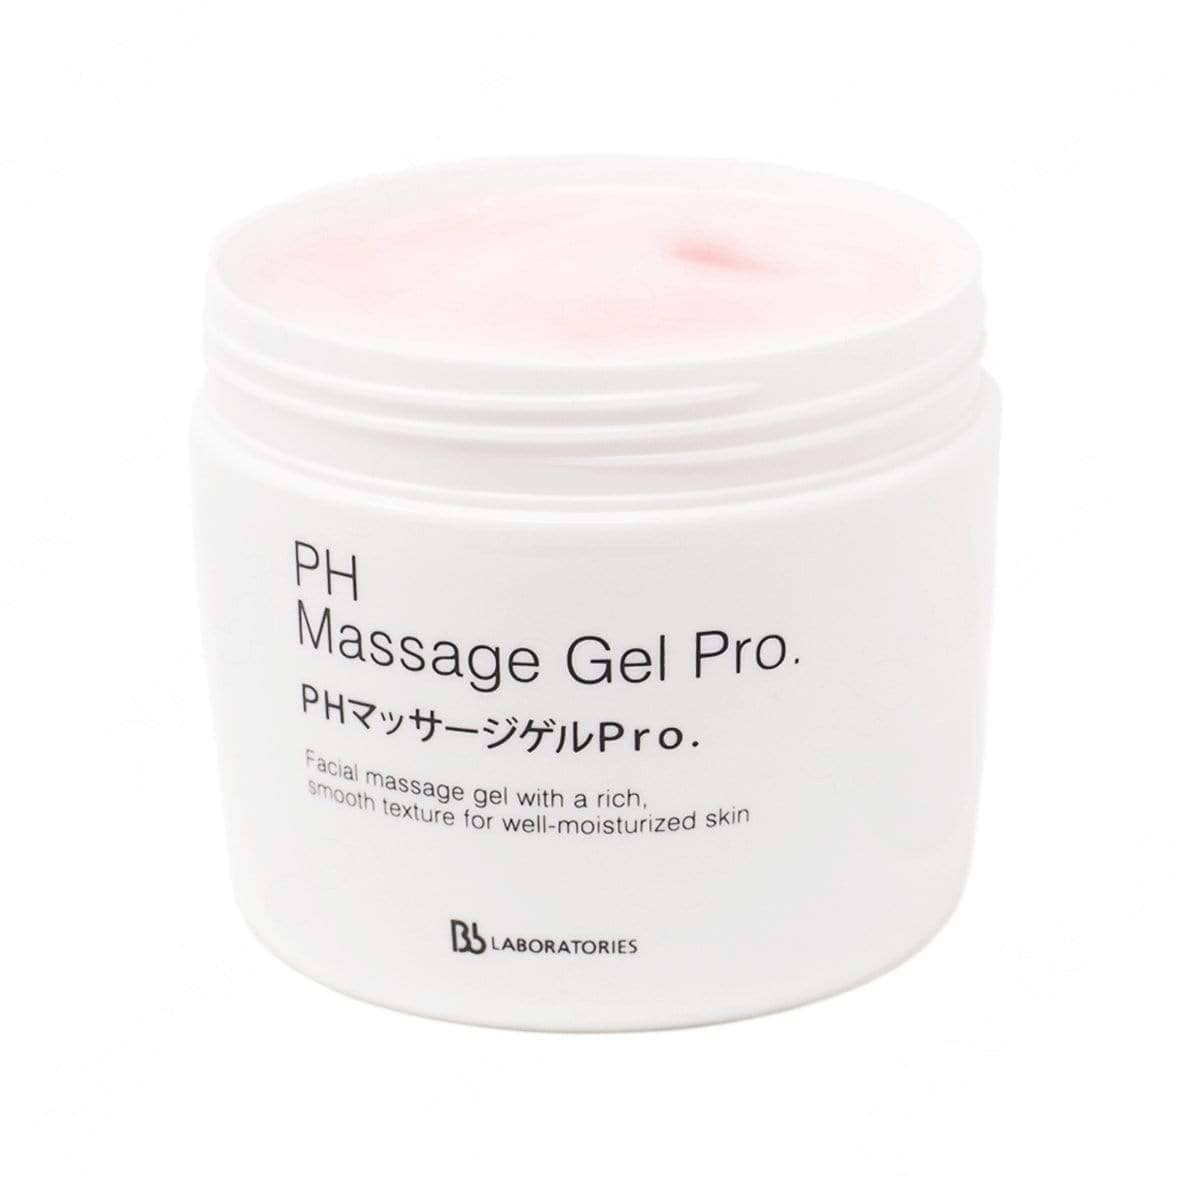 BB Laboratories PH Facial Massage Gel Pro